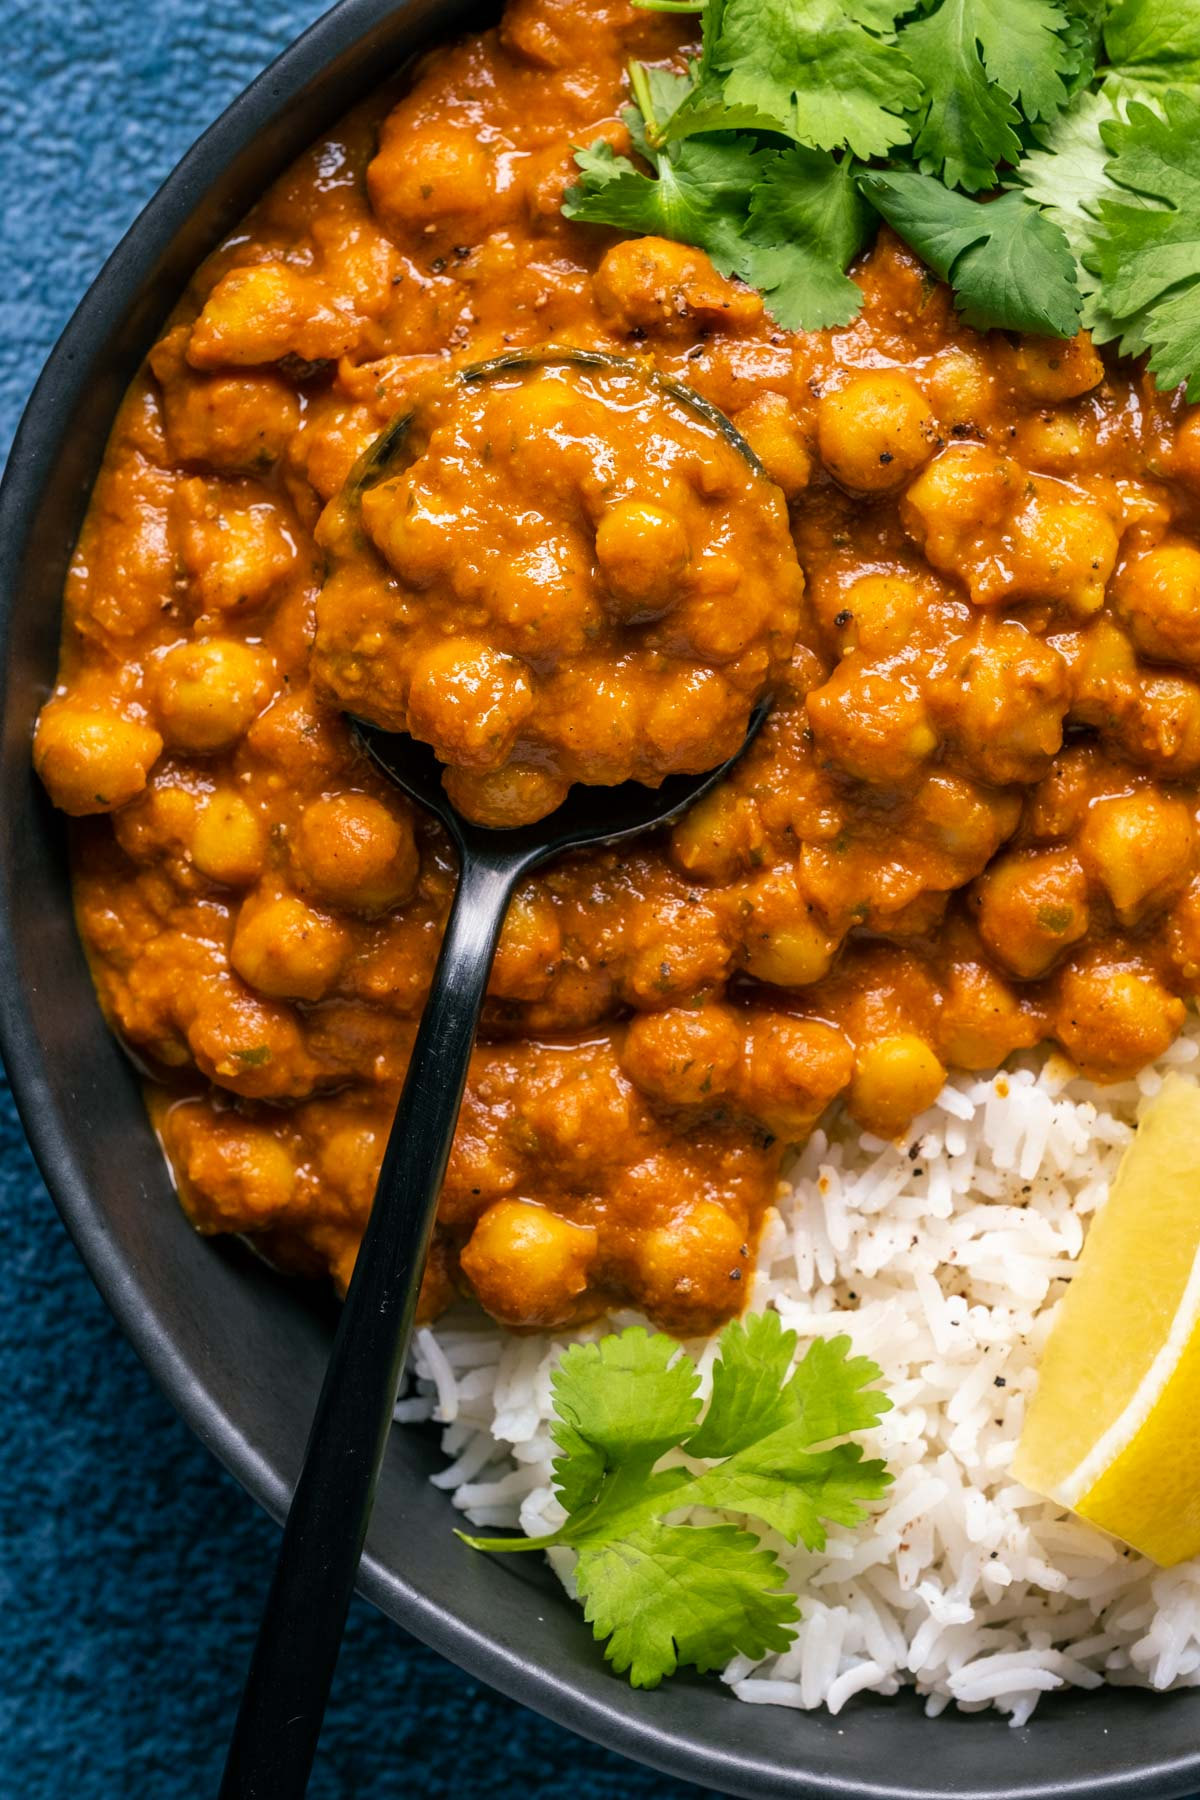 Vegan chana masala with rice, cilantro and fresh lemon in a black bowl with a spoon.